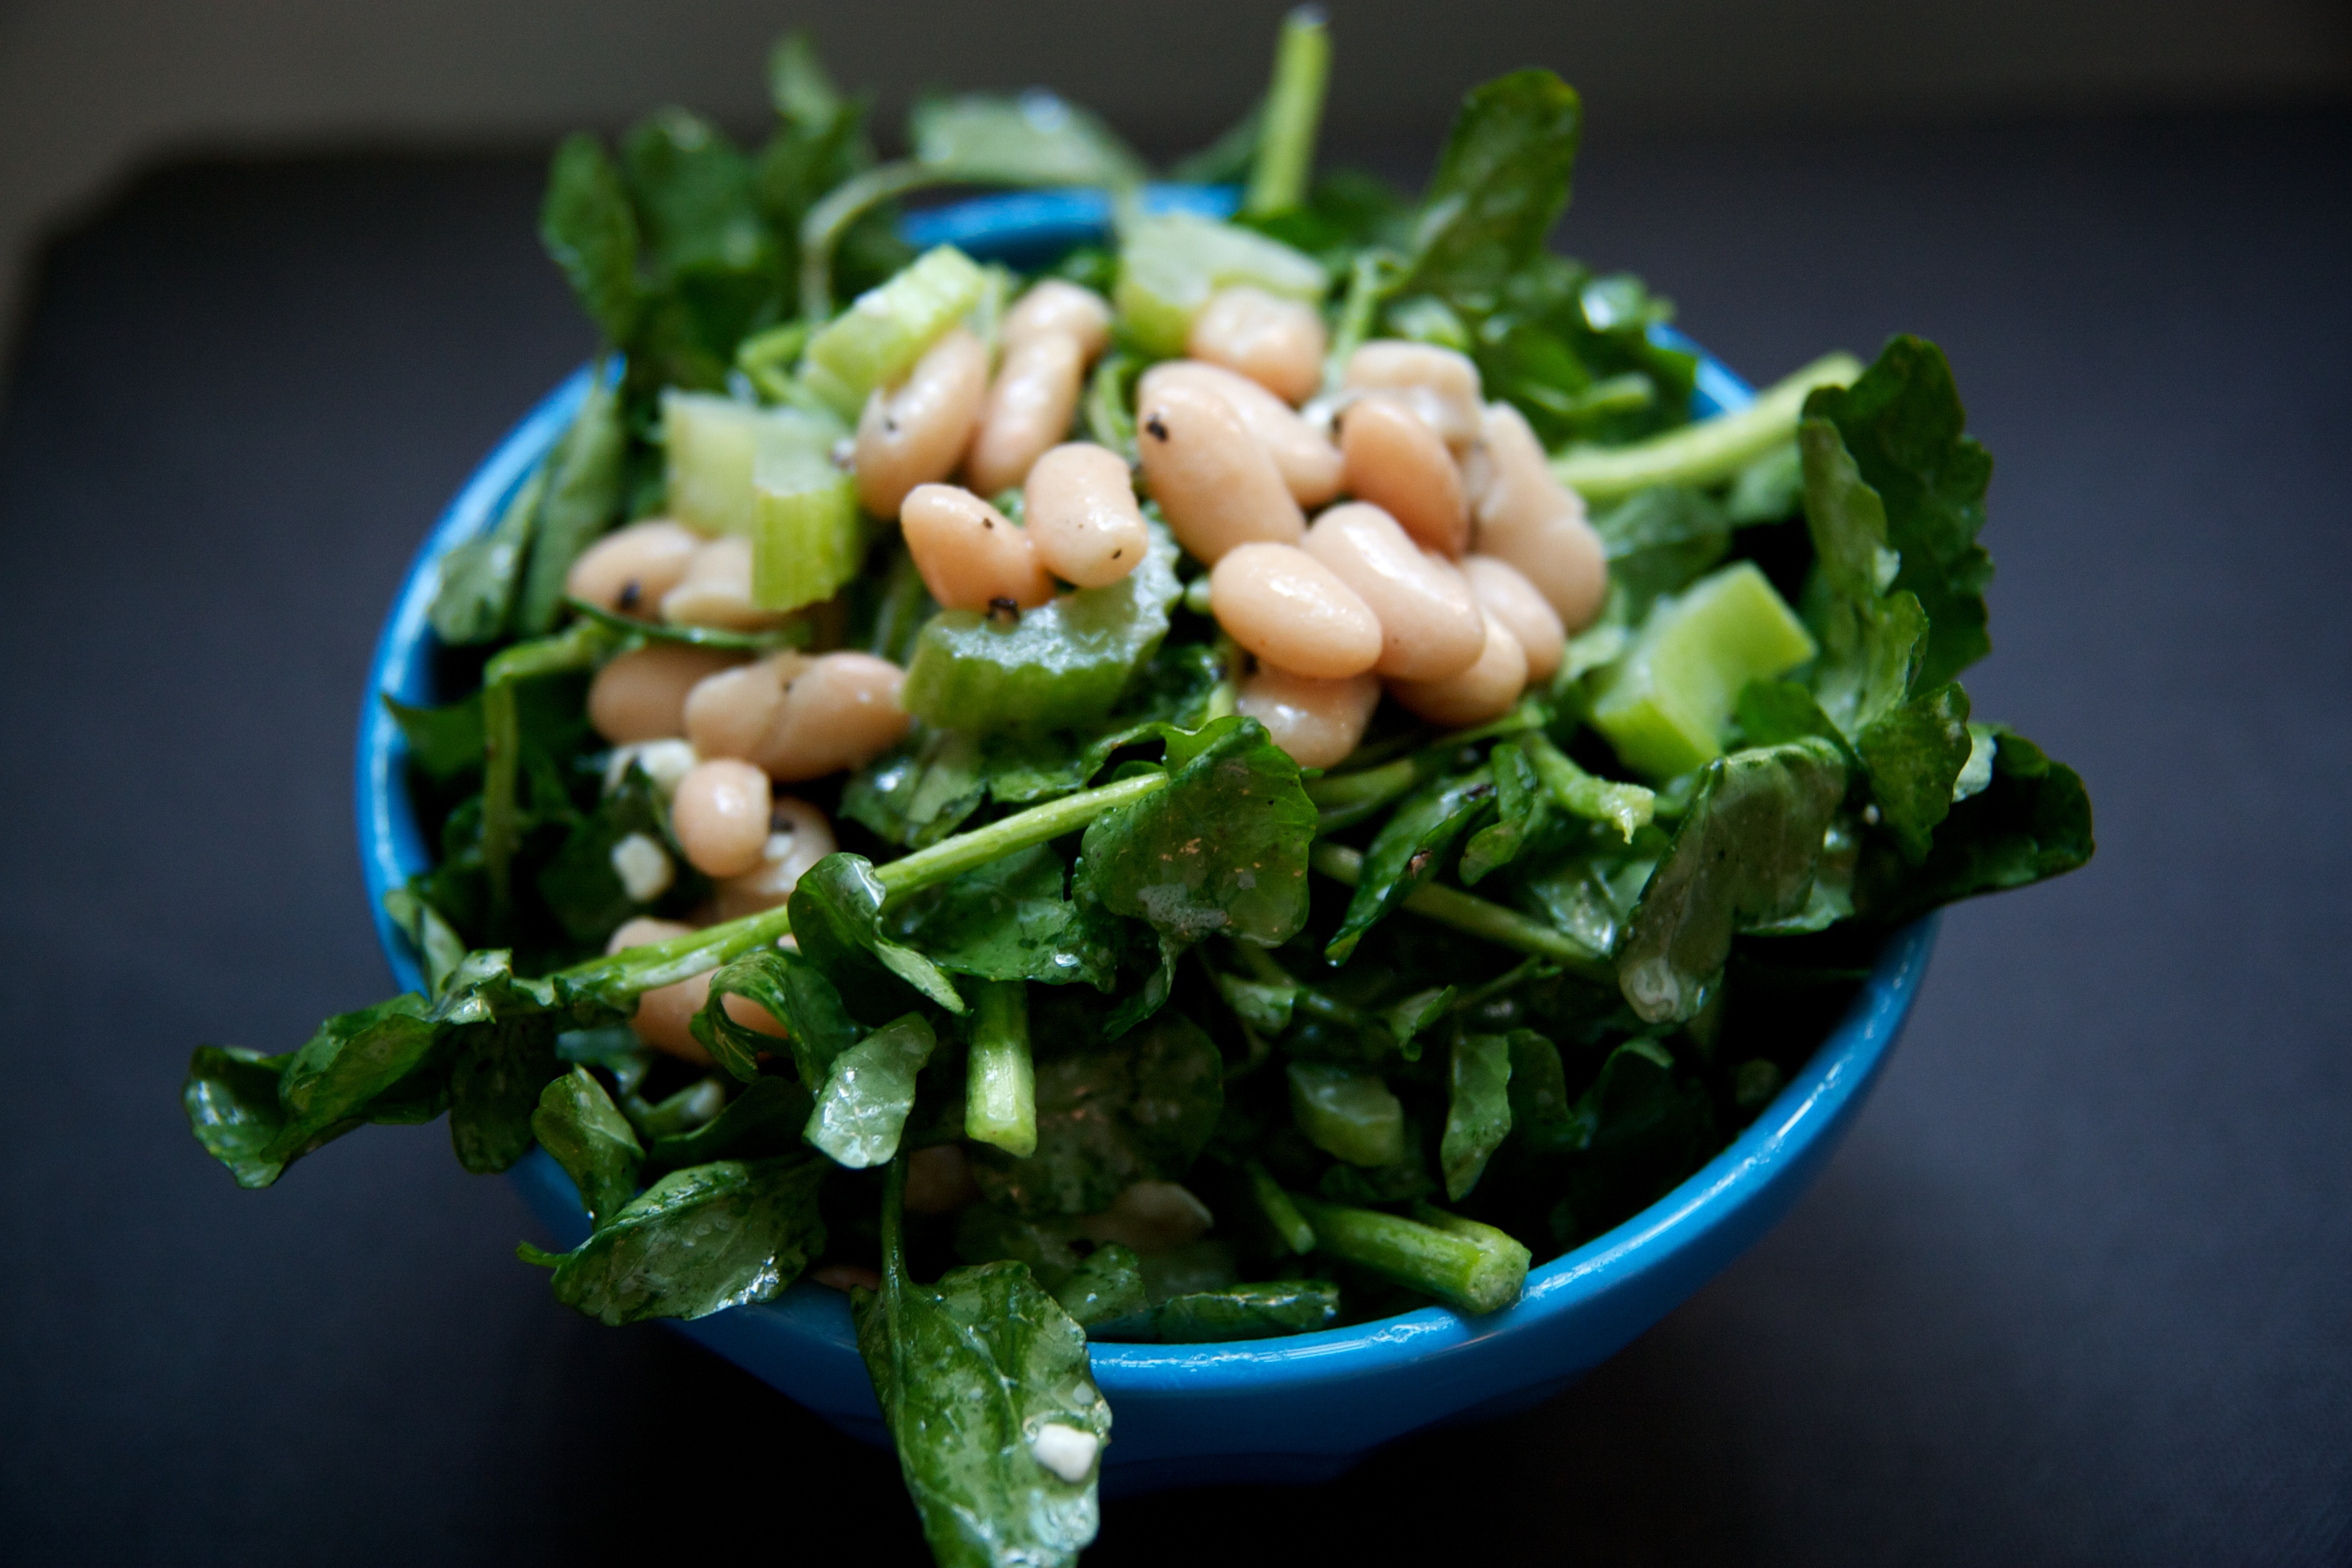 White Bean, Celery and Cress with a Blue Cheese Vinagrette